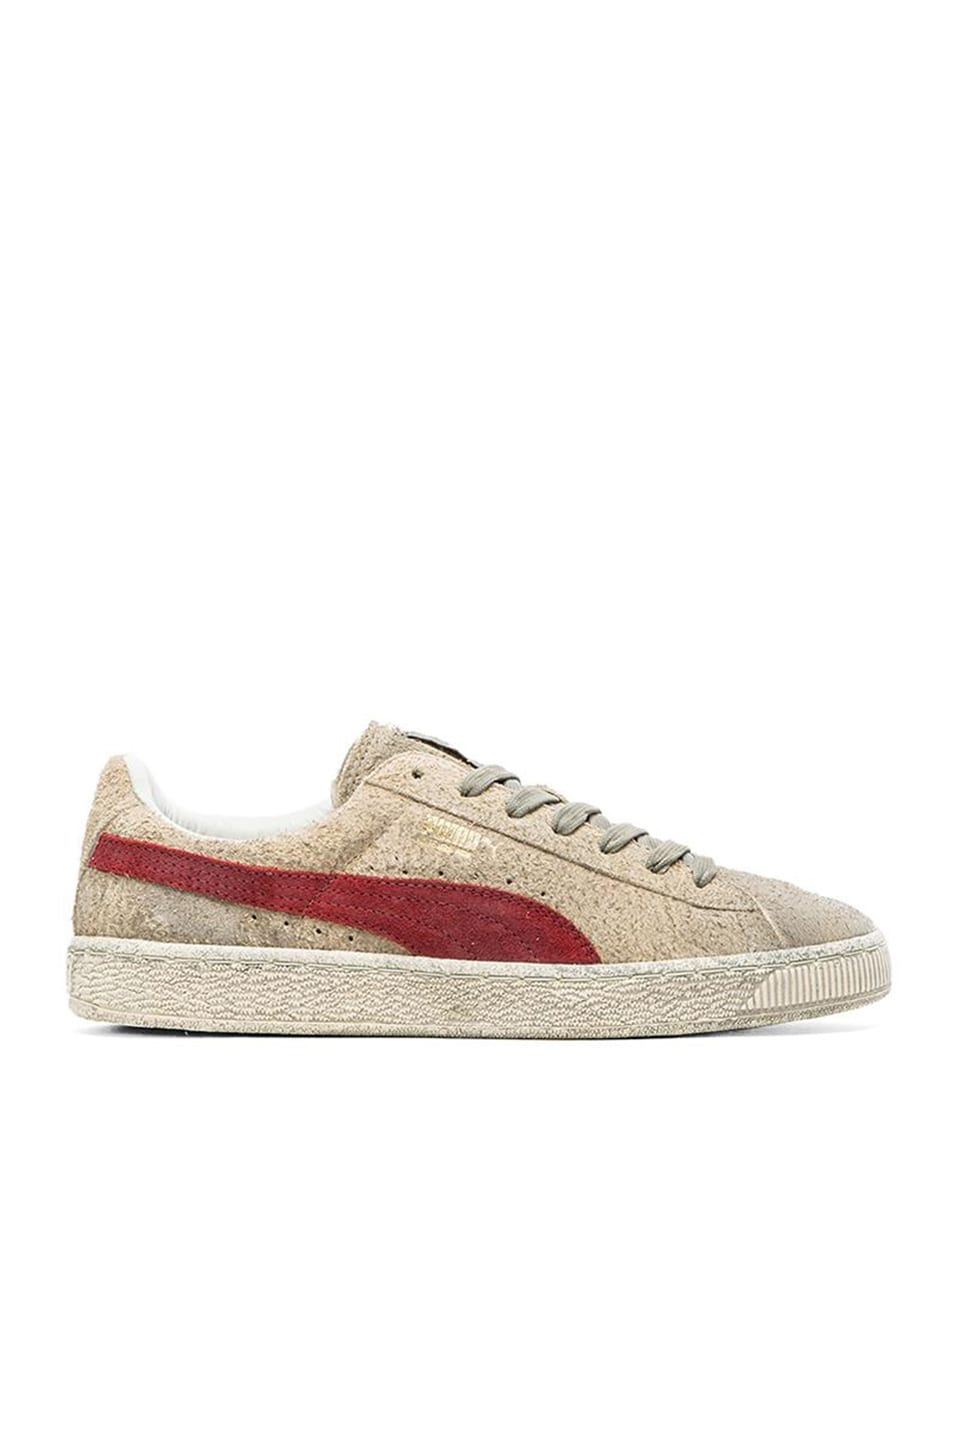 acebf985b1930 Puma Select x A-Life Suede in Whisper White Amazon | REVOLVE